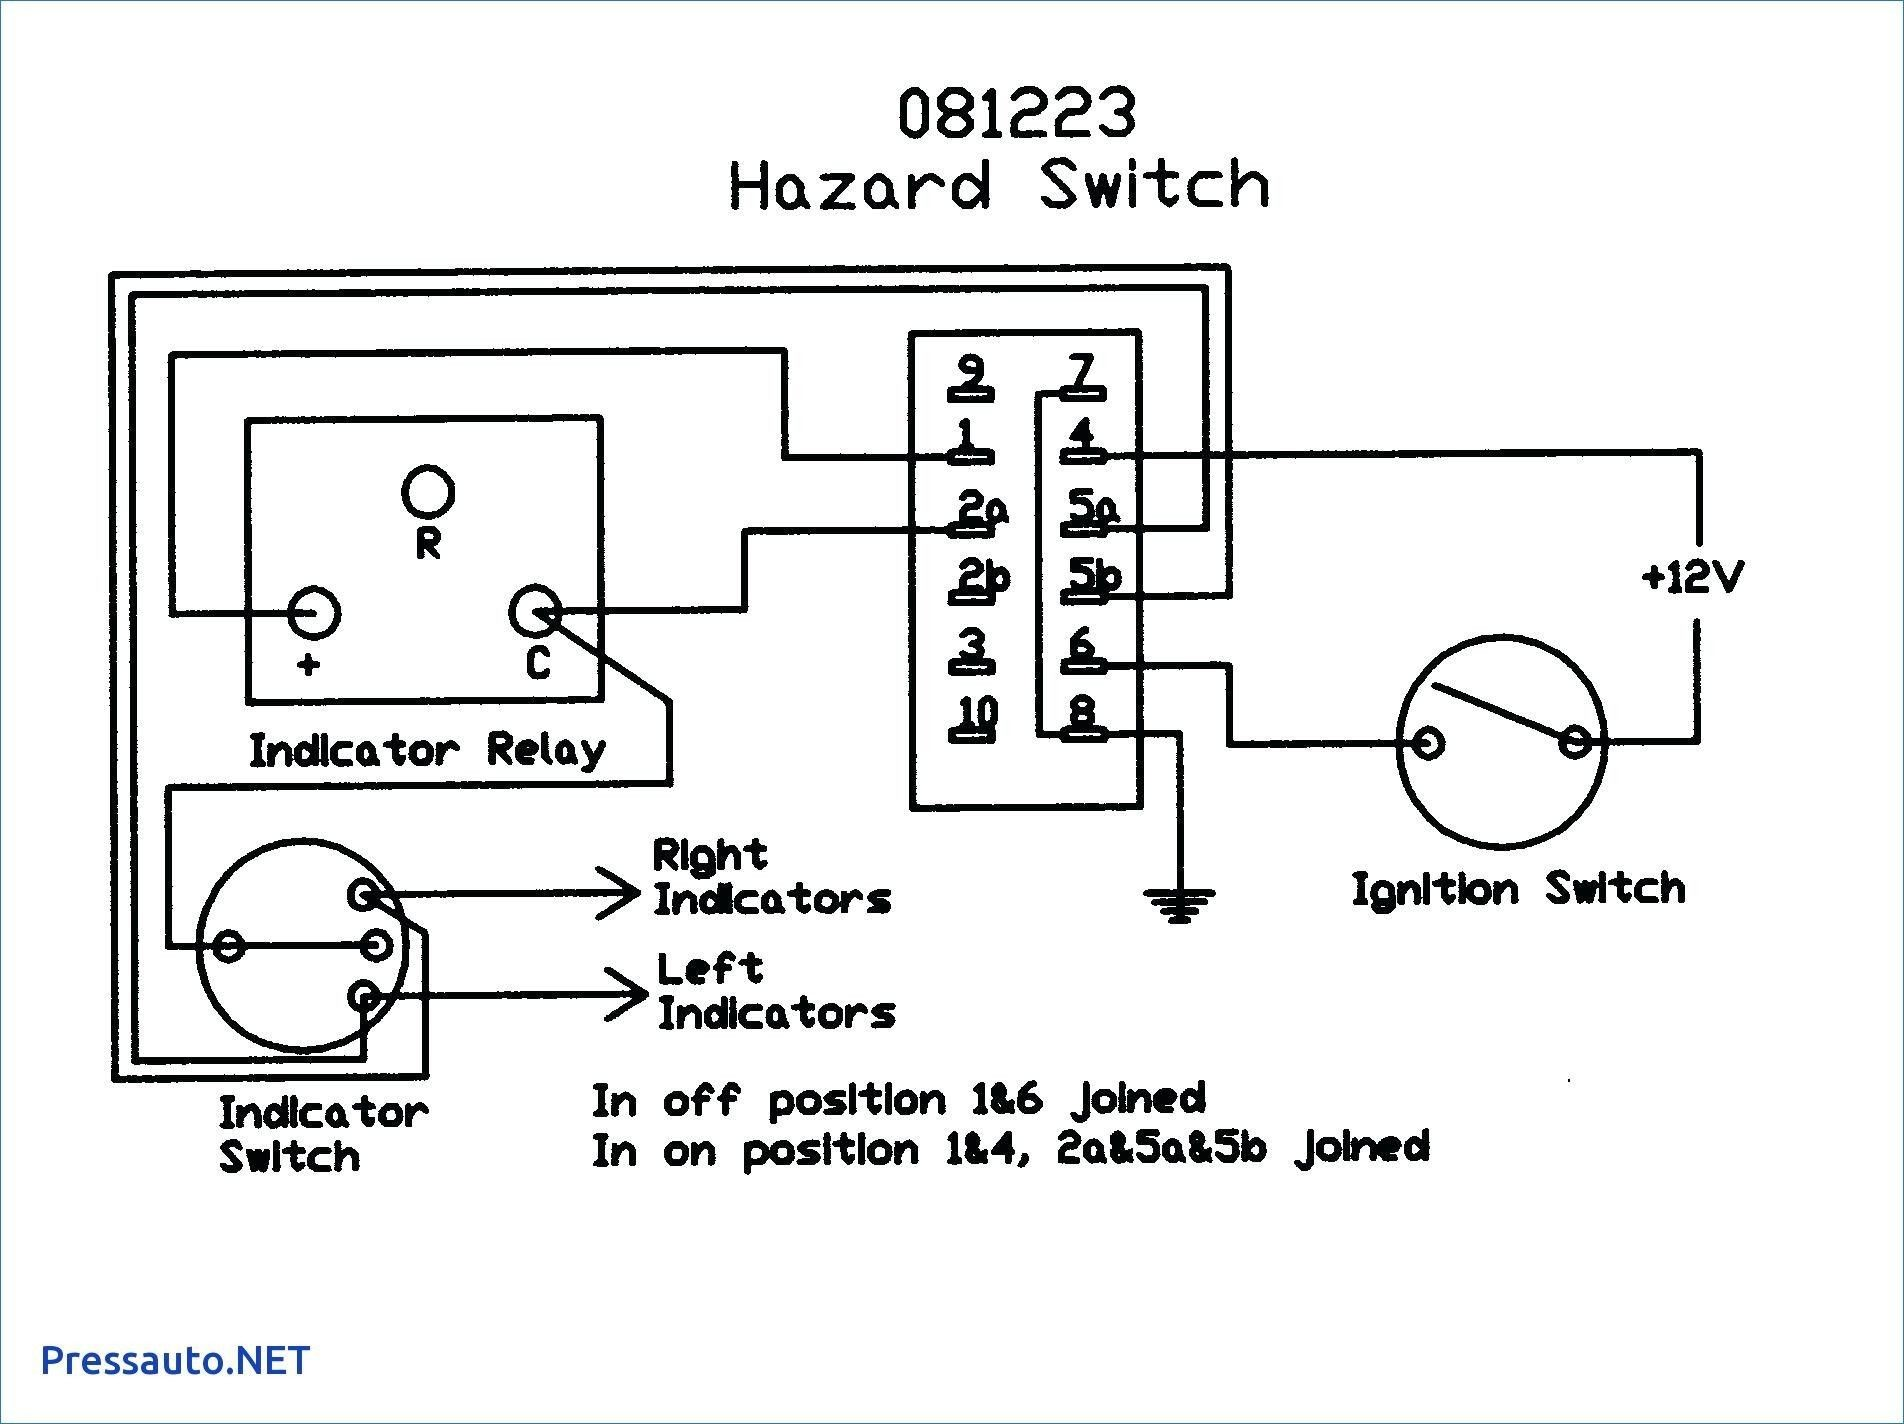 Universal Power Window Wiring Diagram Awesome Wiring Diagram for Motorcycle Hazard Lights Of Universal Power Window Wiring Diagram